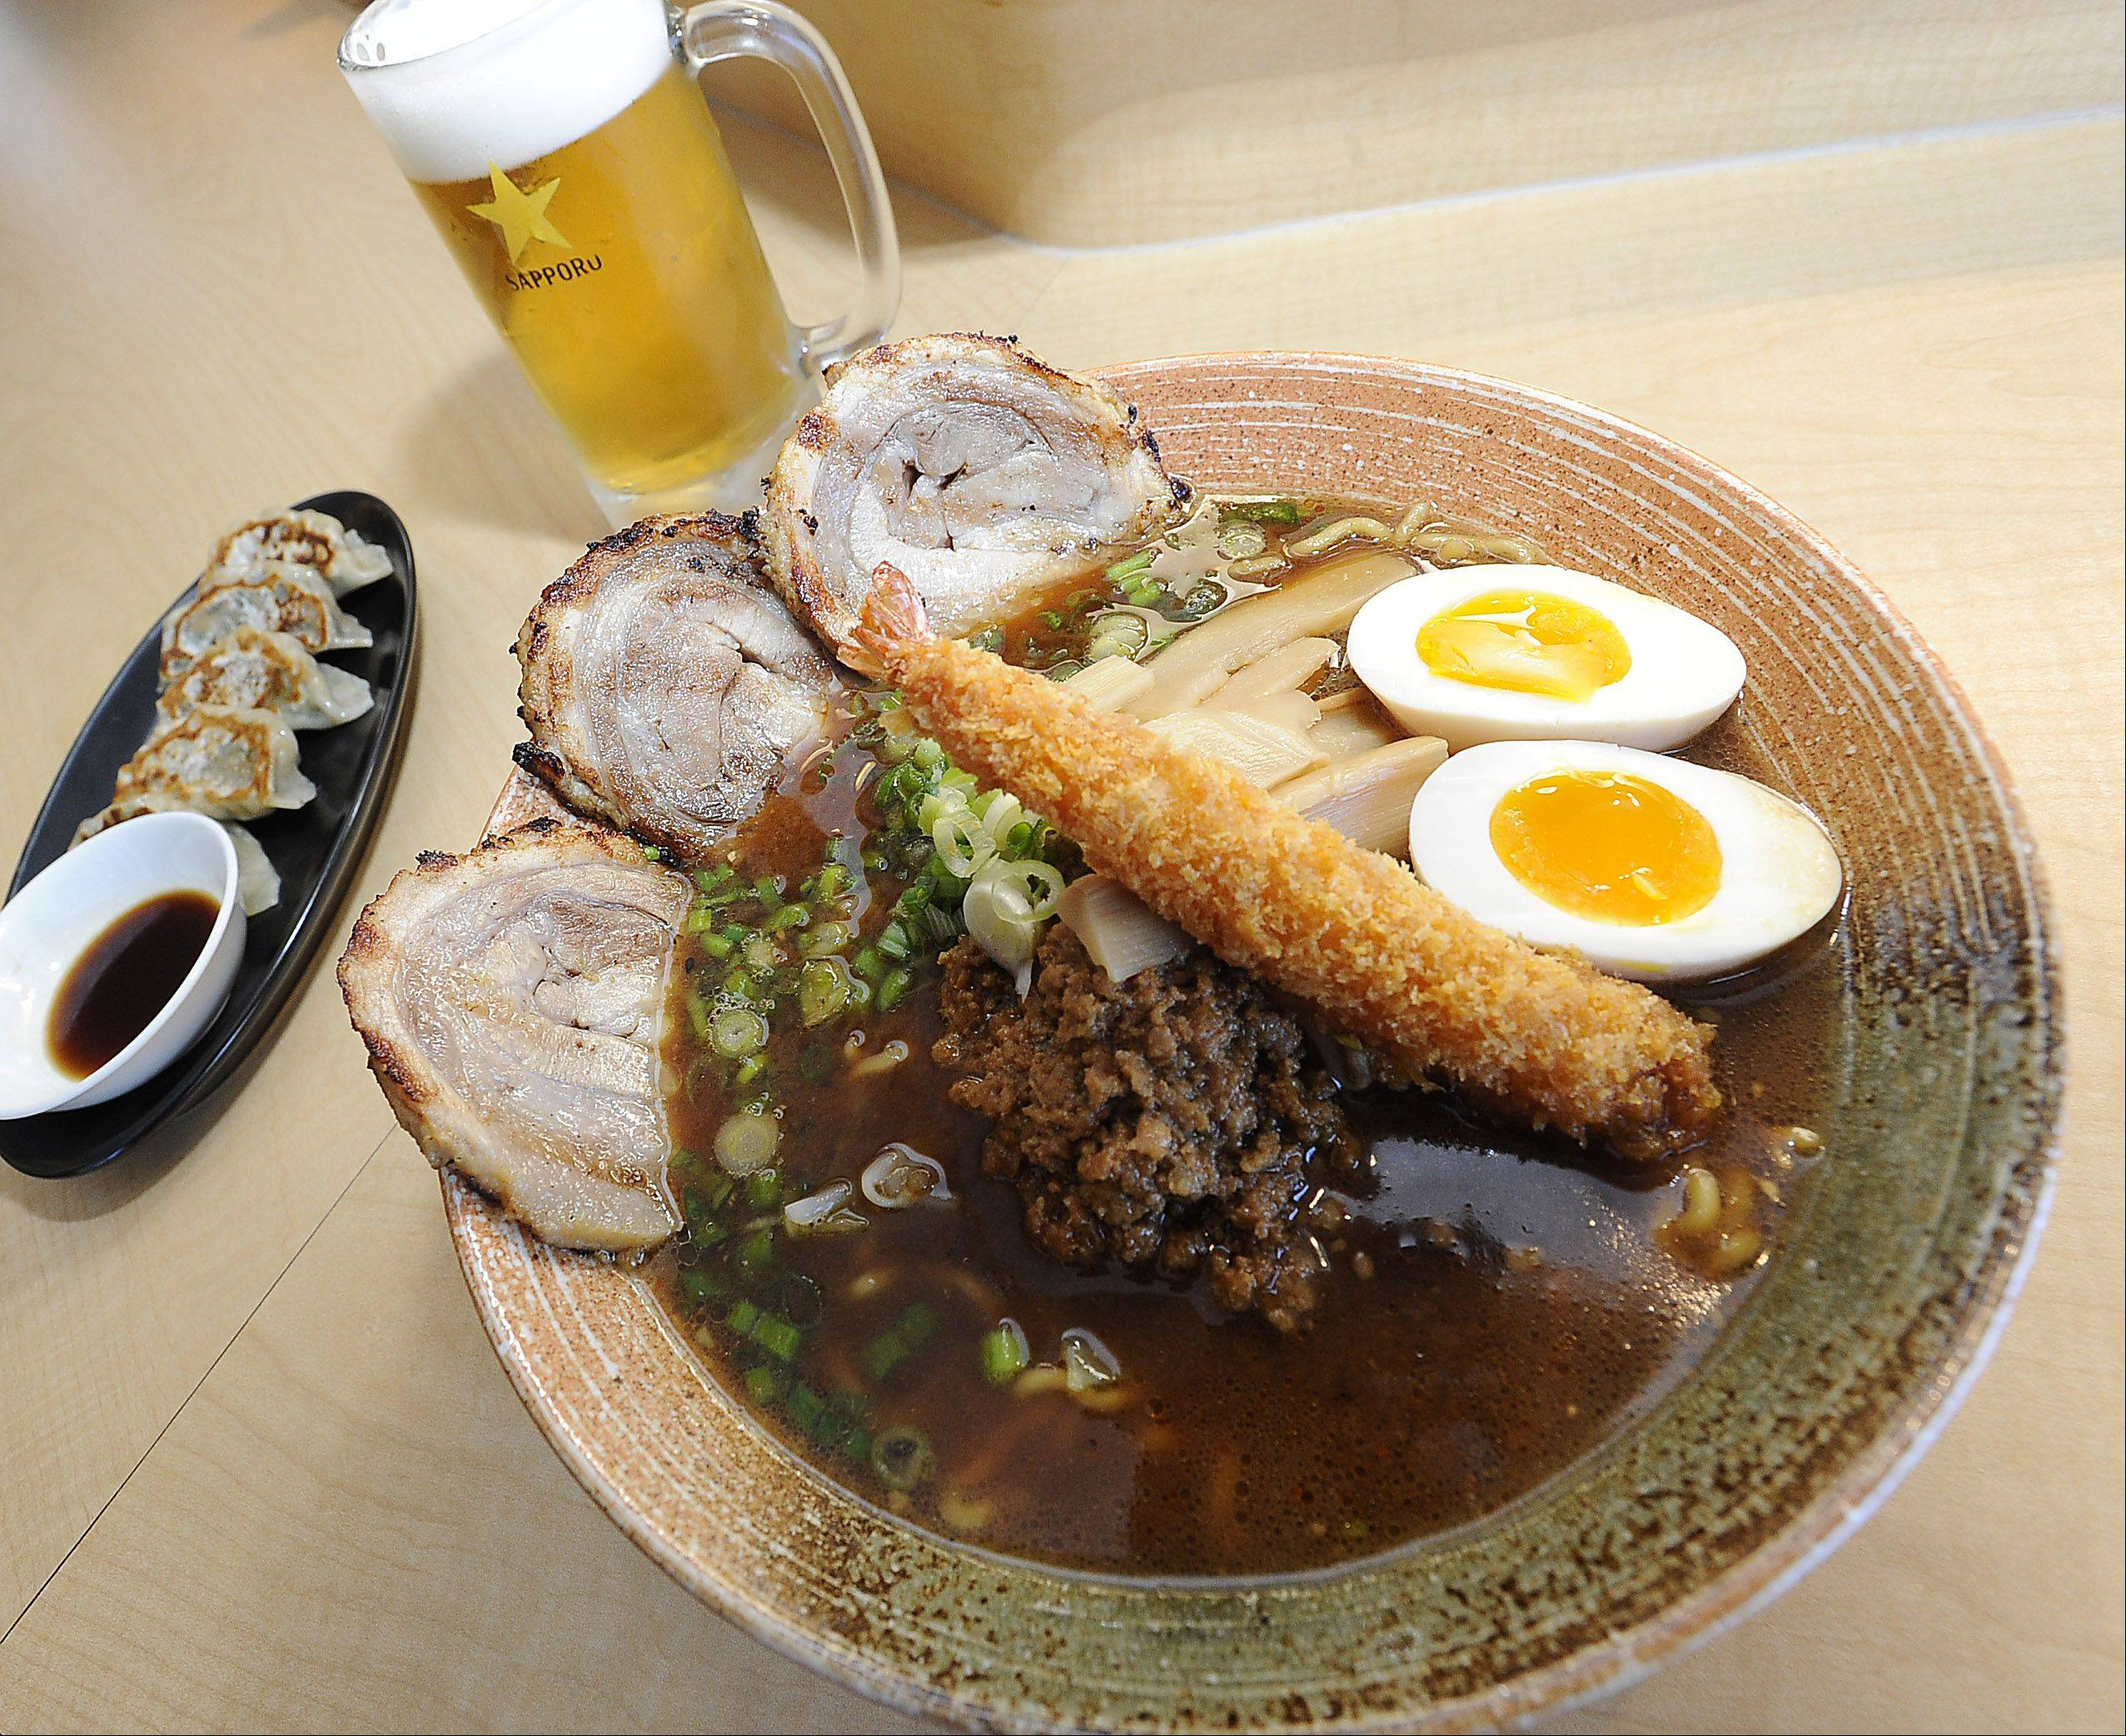 Mount Prospect's Ramen Misoya staple dish Nagoya-style mame miso with egg gyoza/dumplings and Sapporo to wash it all down.